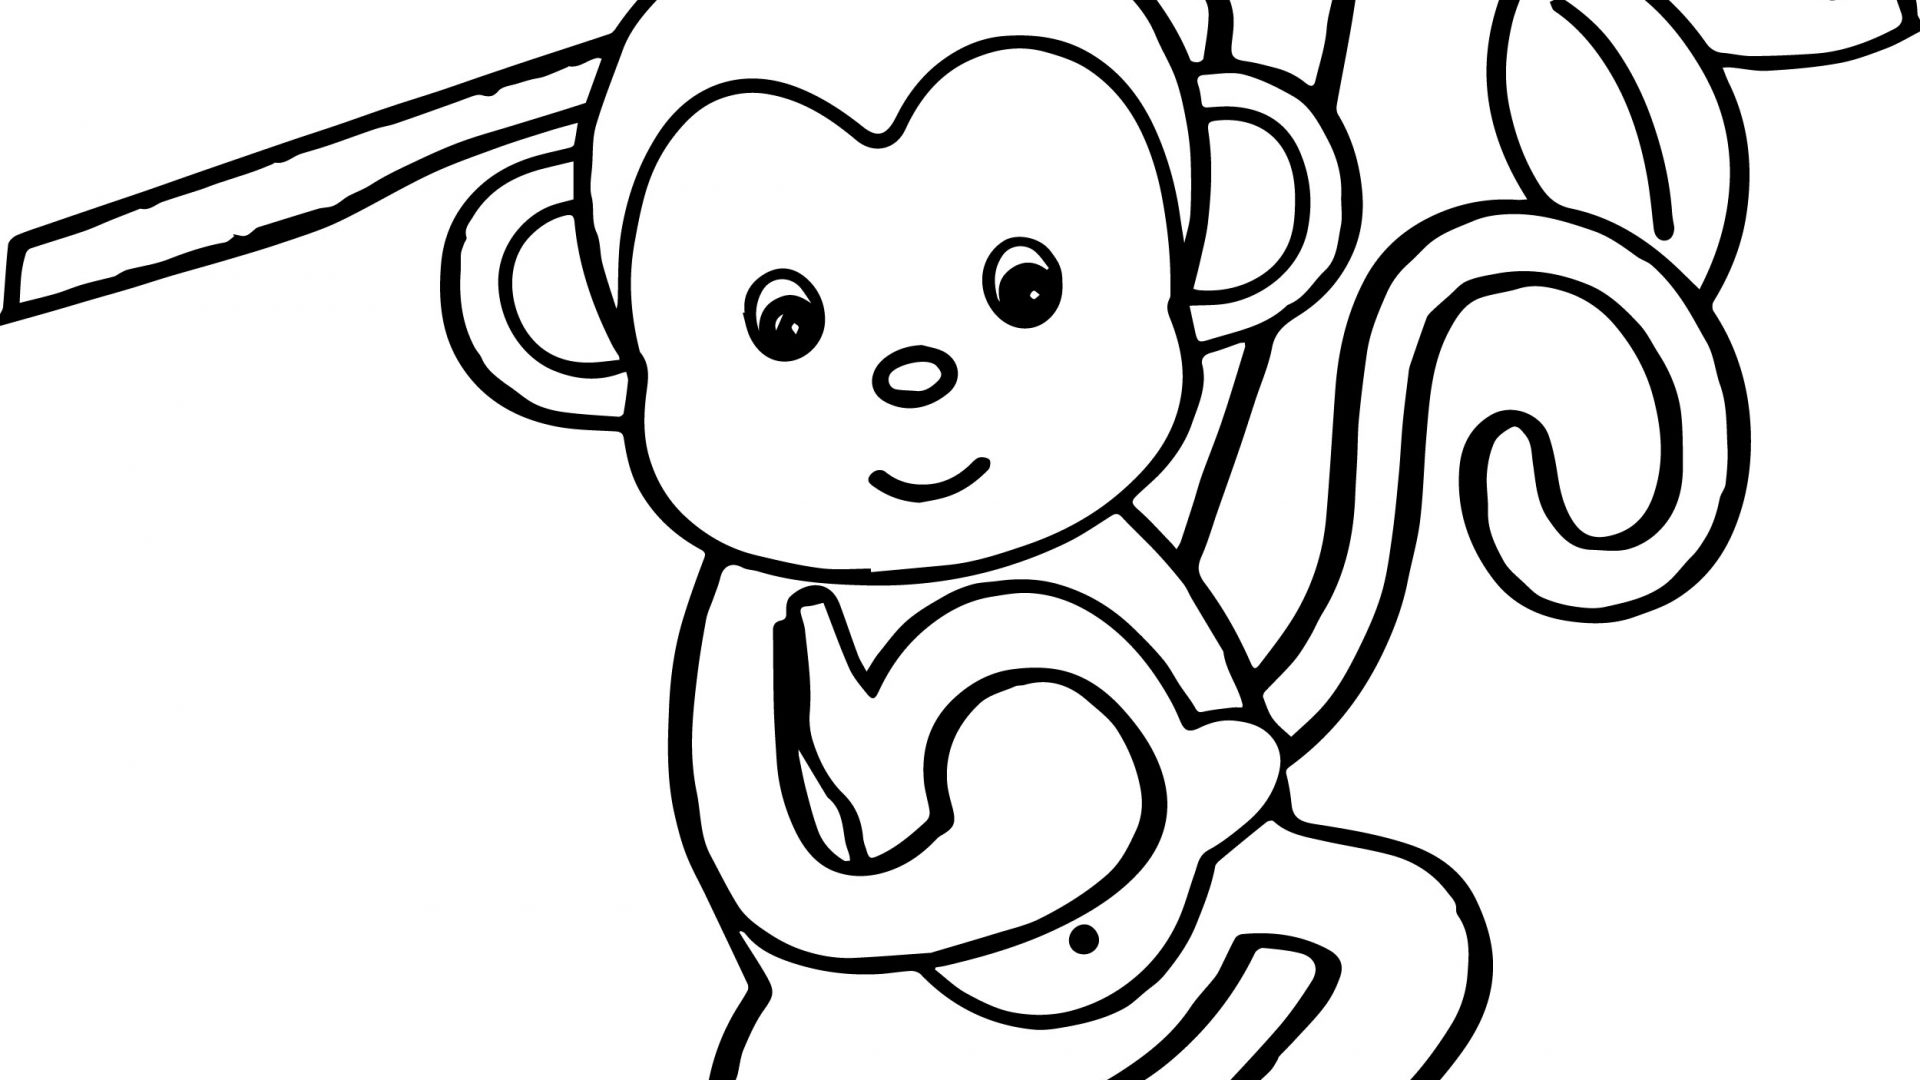 1920x1080 Free Printable Cute Monkey Coloring Pages For Toddler Page Animals